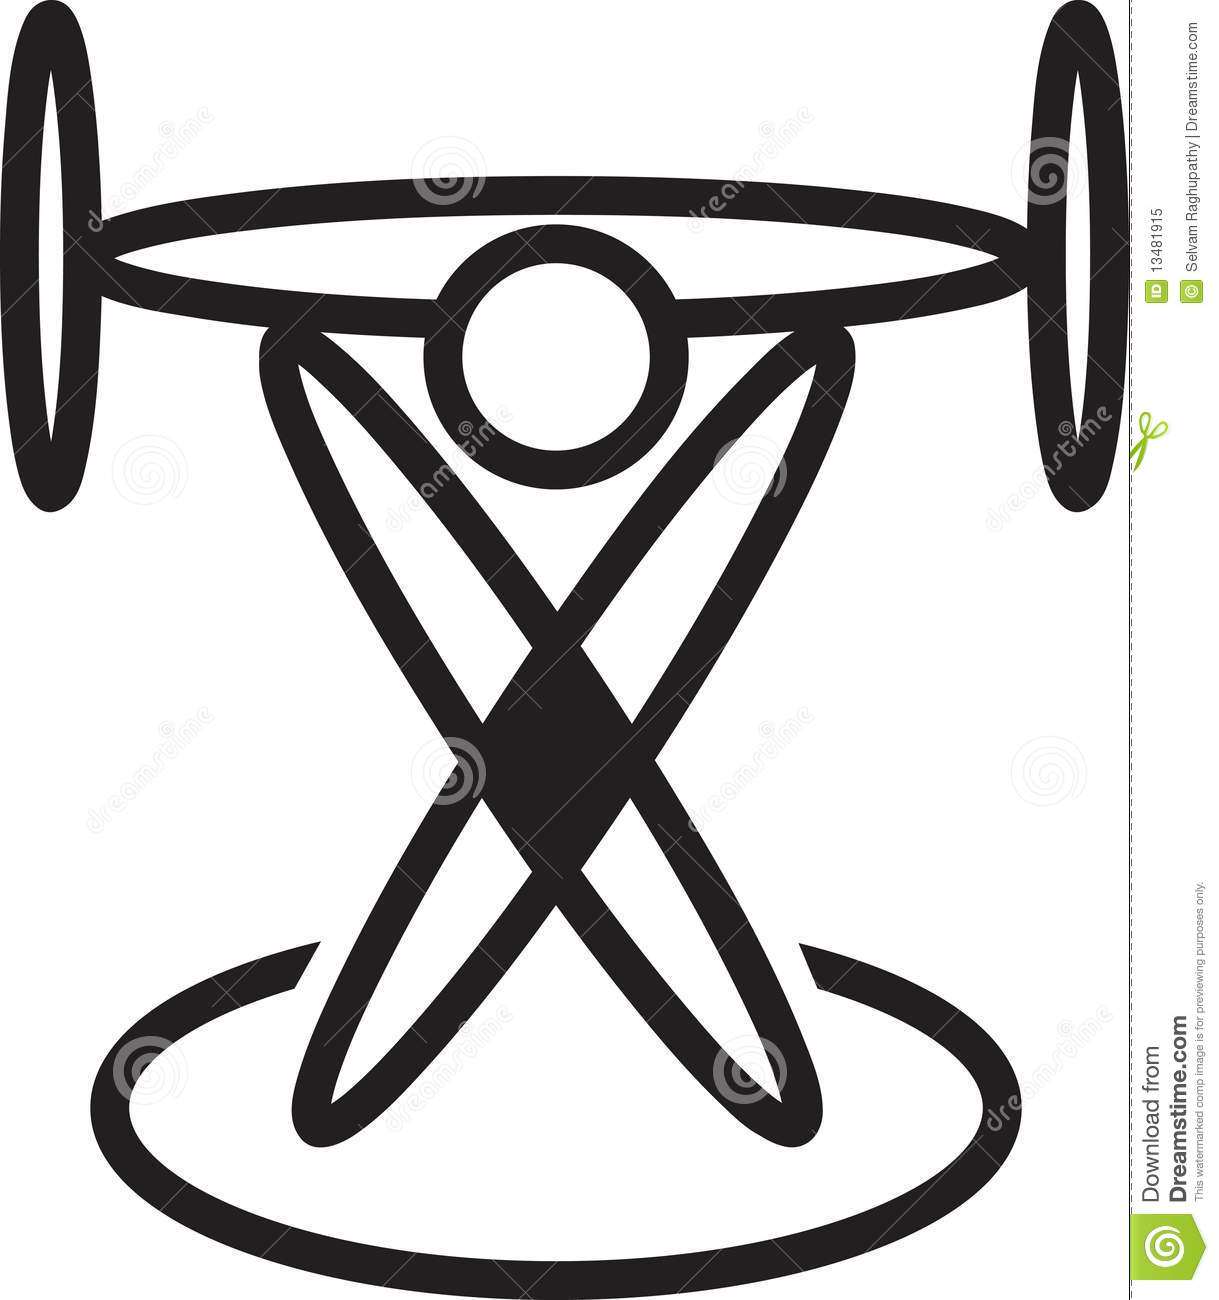 Weightlifting Logo Royalty Free Stock Photo - Image: 13481915